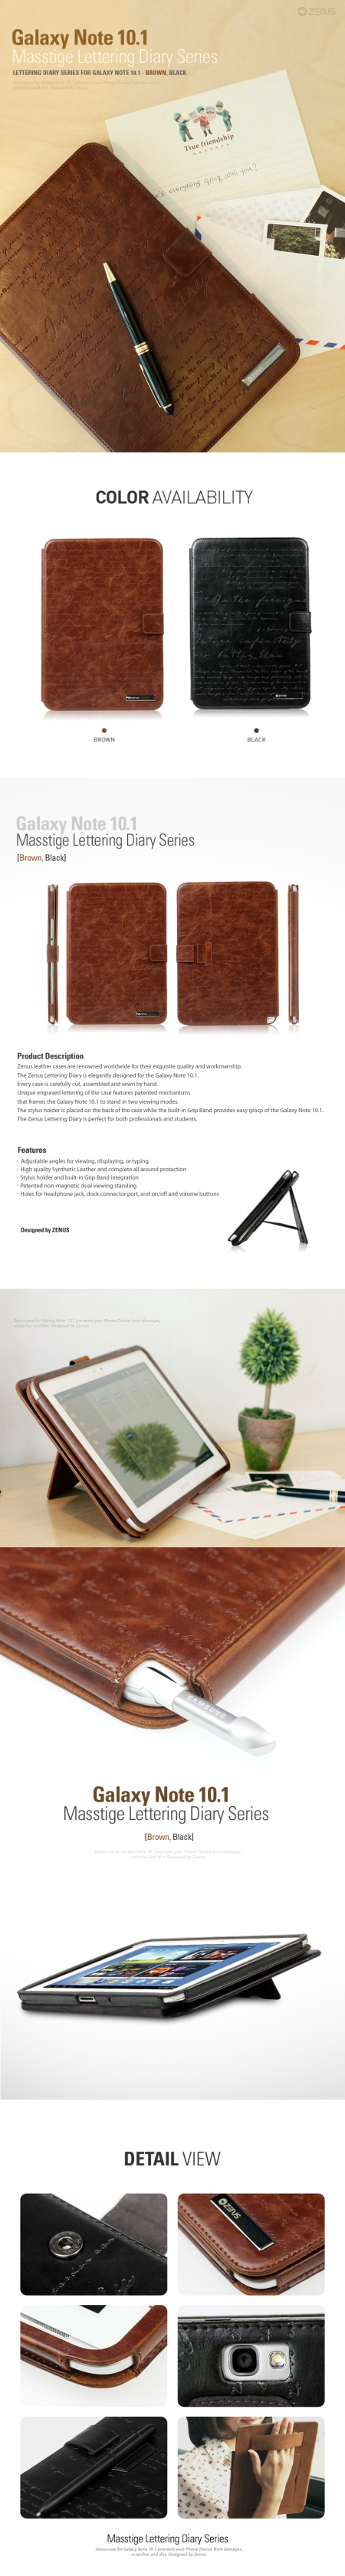 Zenus Galaxy Note 10.1 Masstige Lettering Diary Series